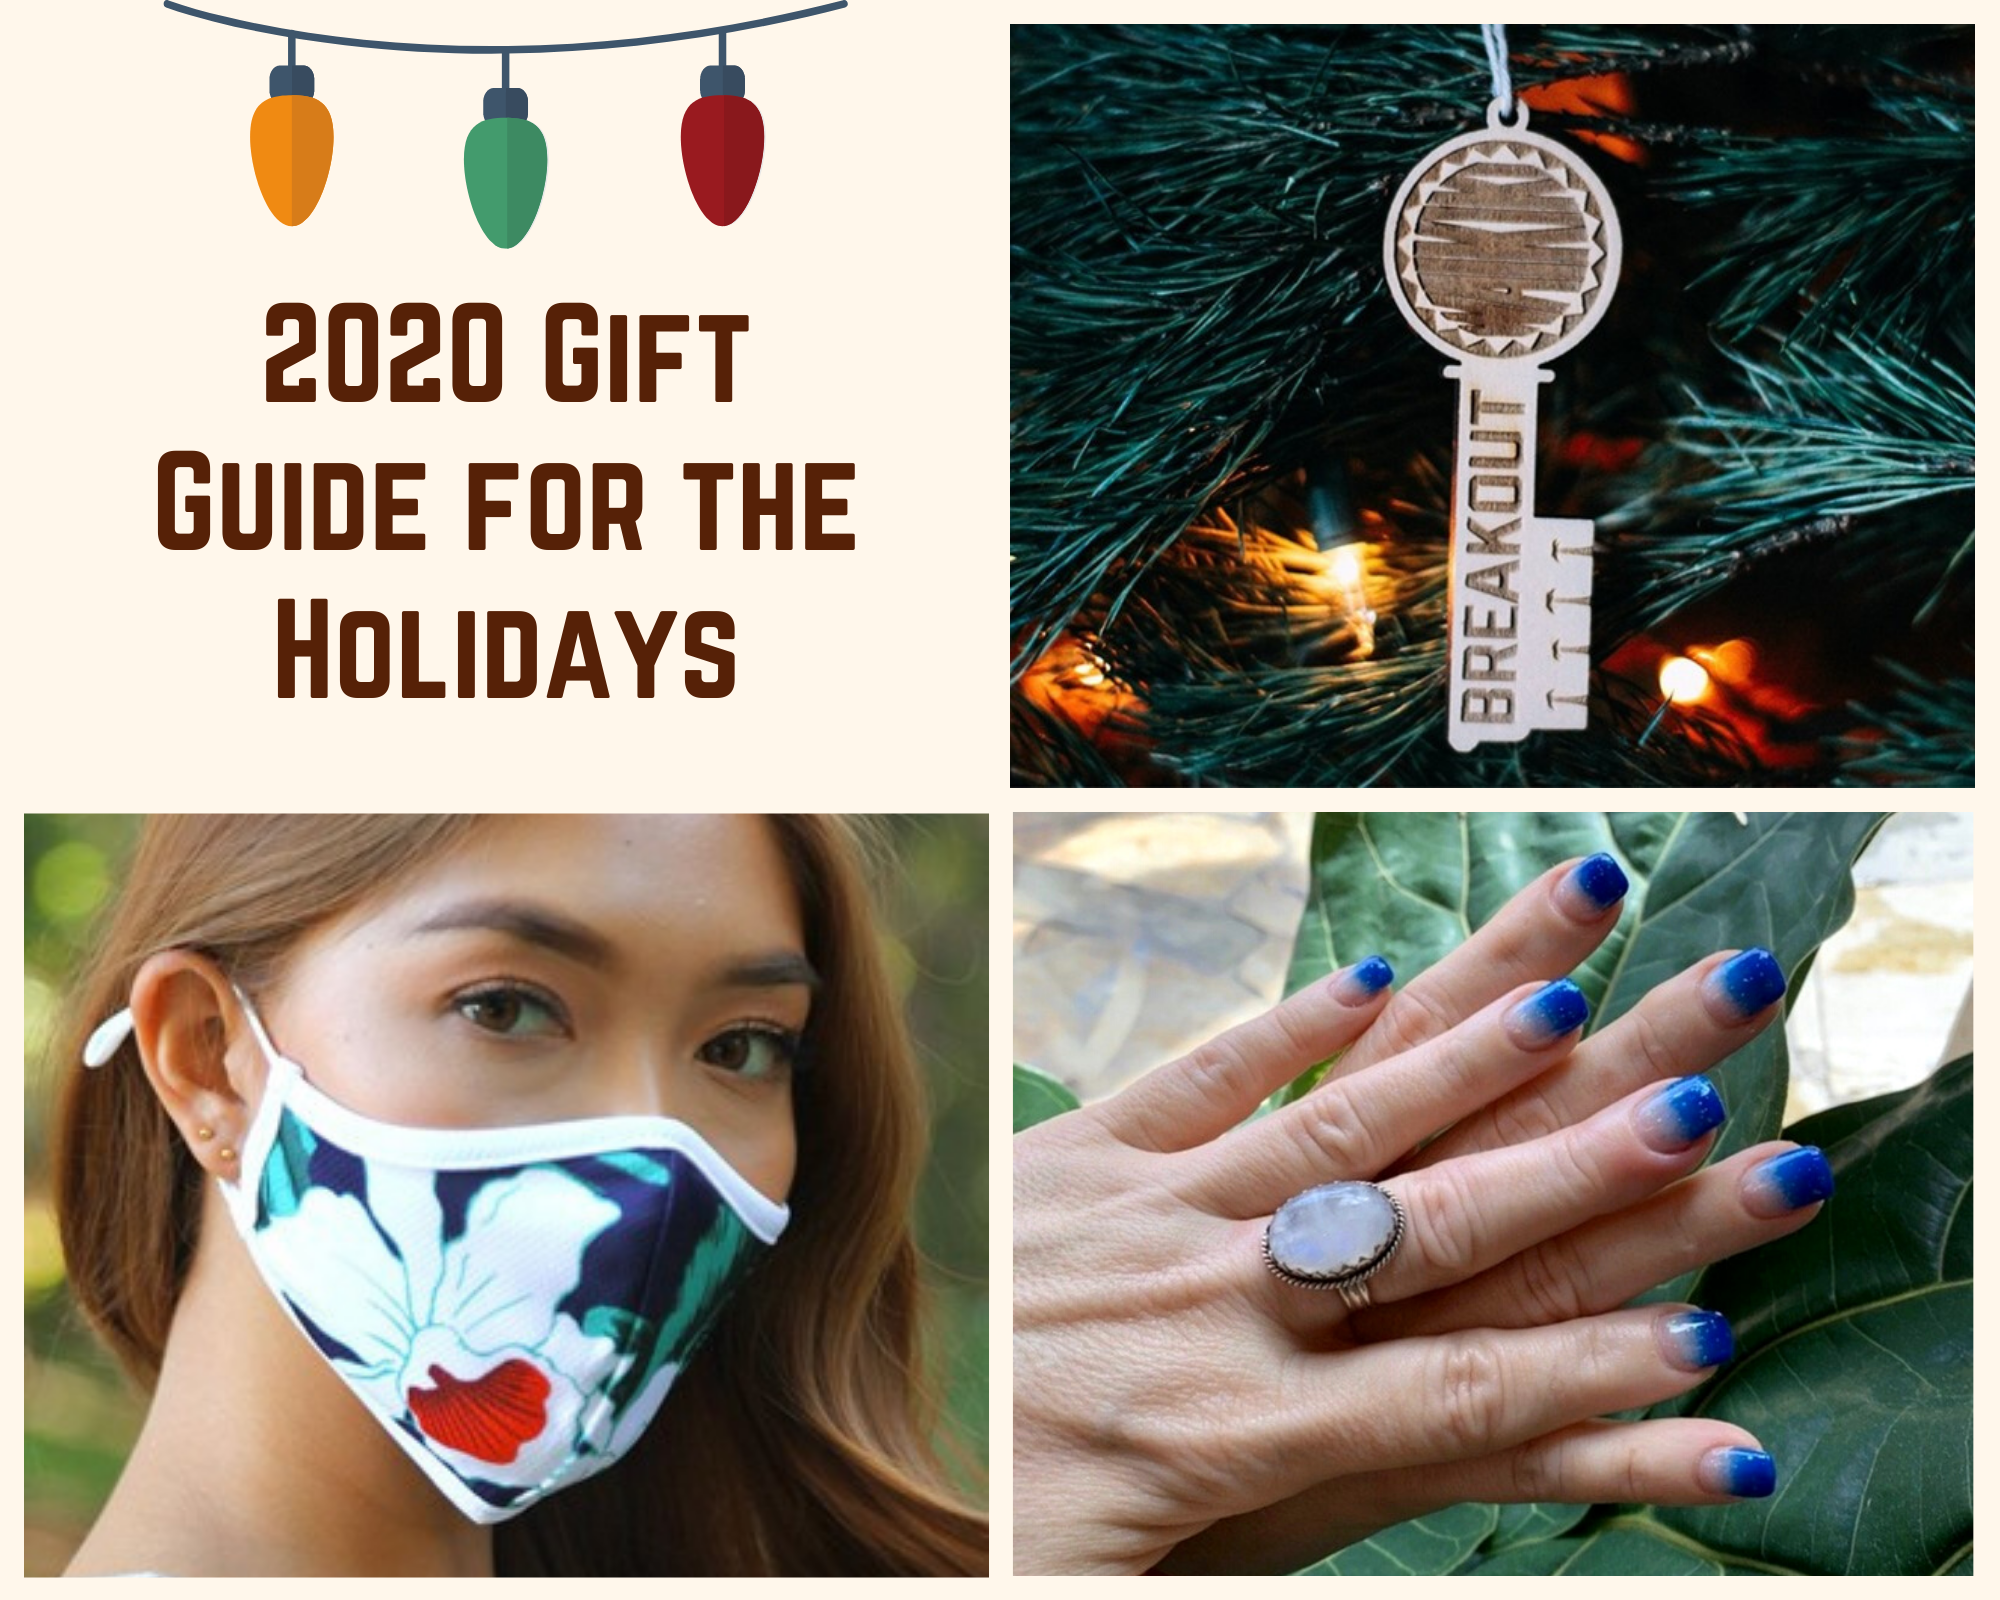 2020 Gift Guide for the Holidays